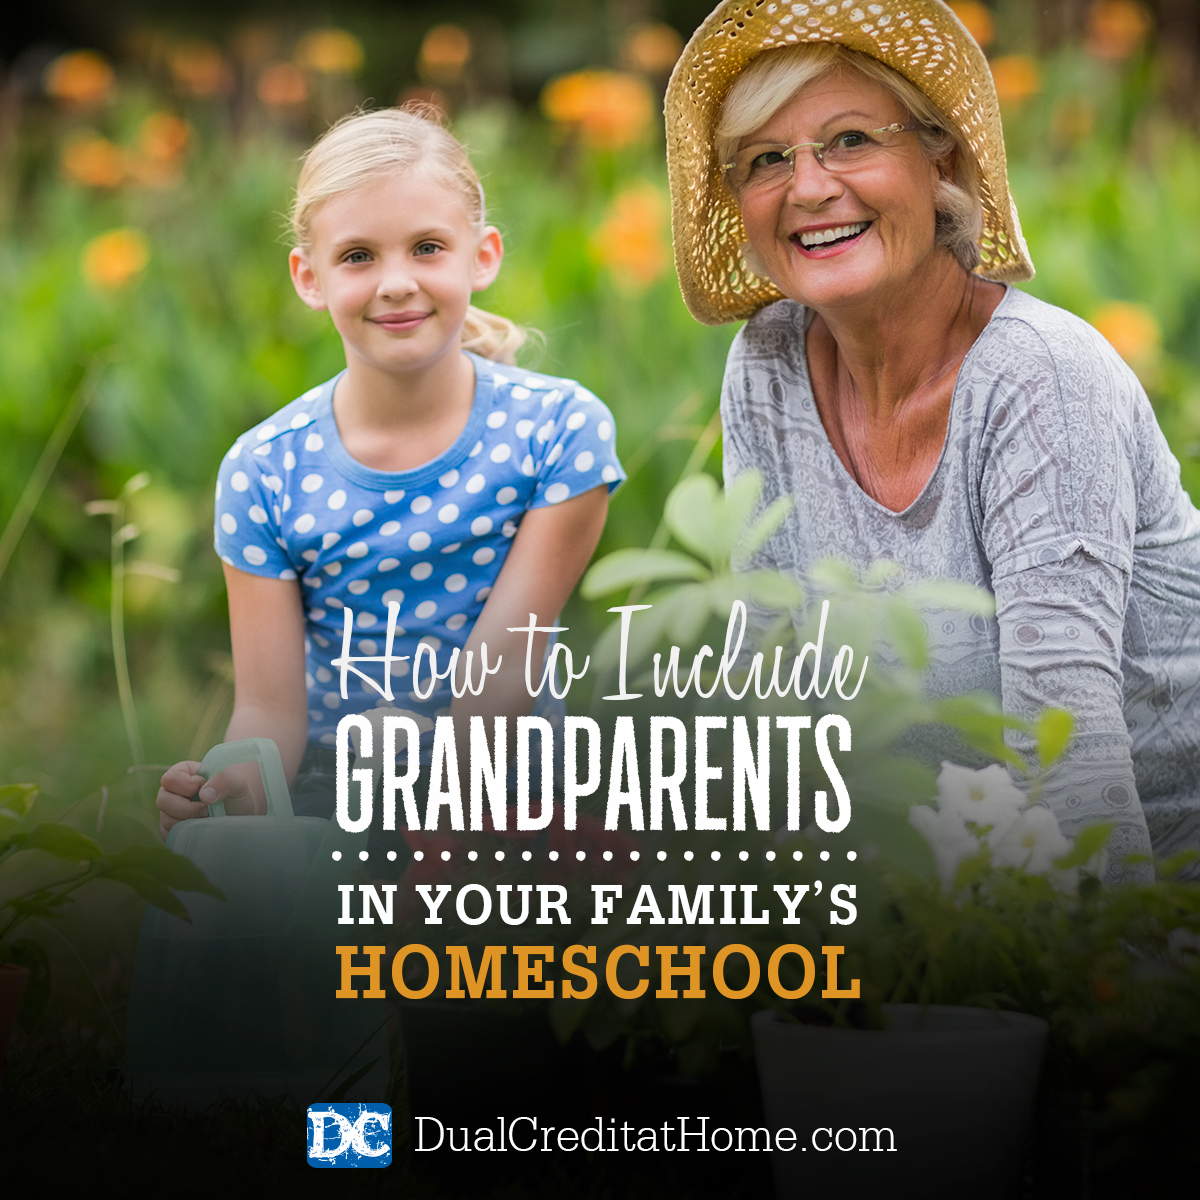 How to Include Grandparents in Your Family's Homeschool